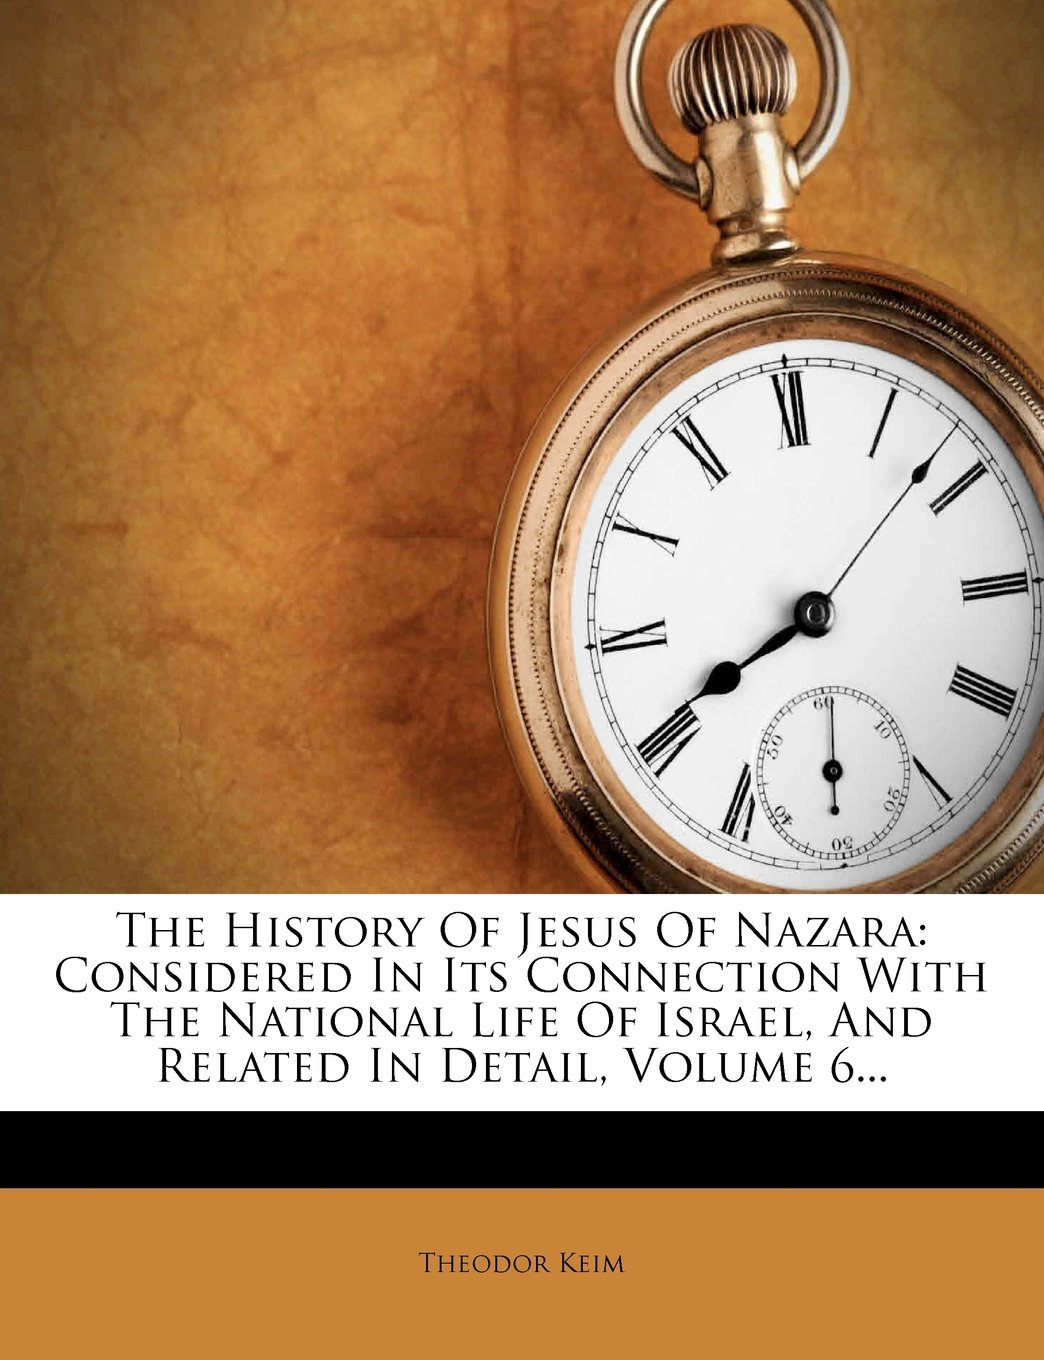 Download The History Of Jesus Of Nazara: Considered In Its Connection With The National Life Of Israel, And Related In Detail, Volume 6... pdf epub